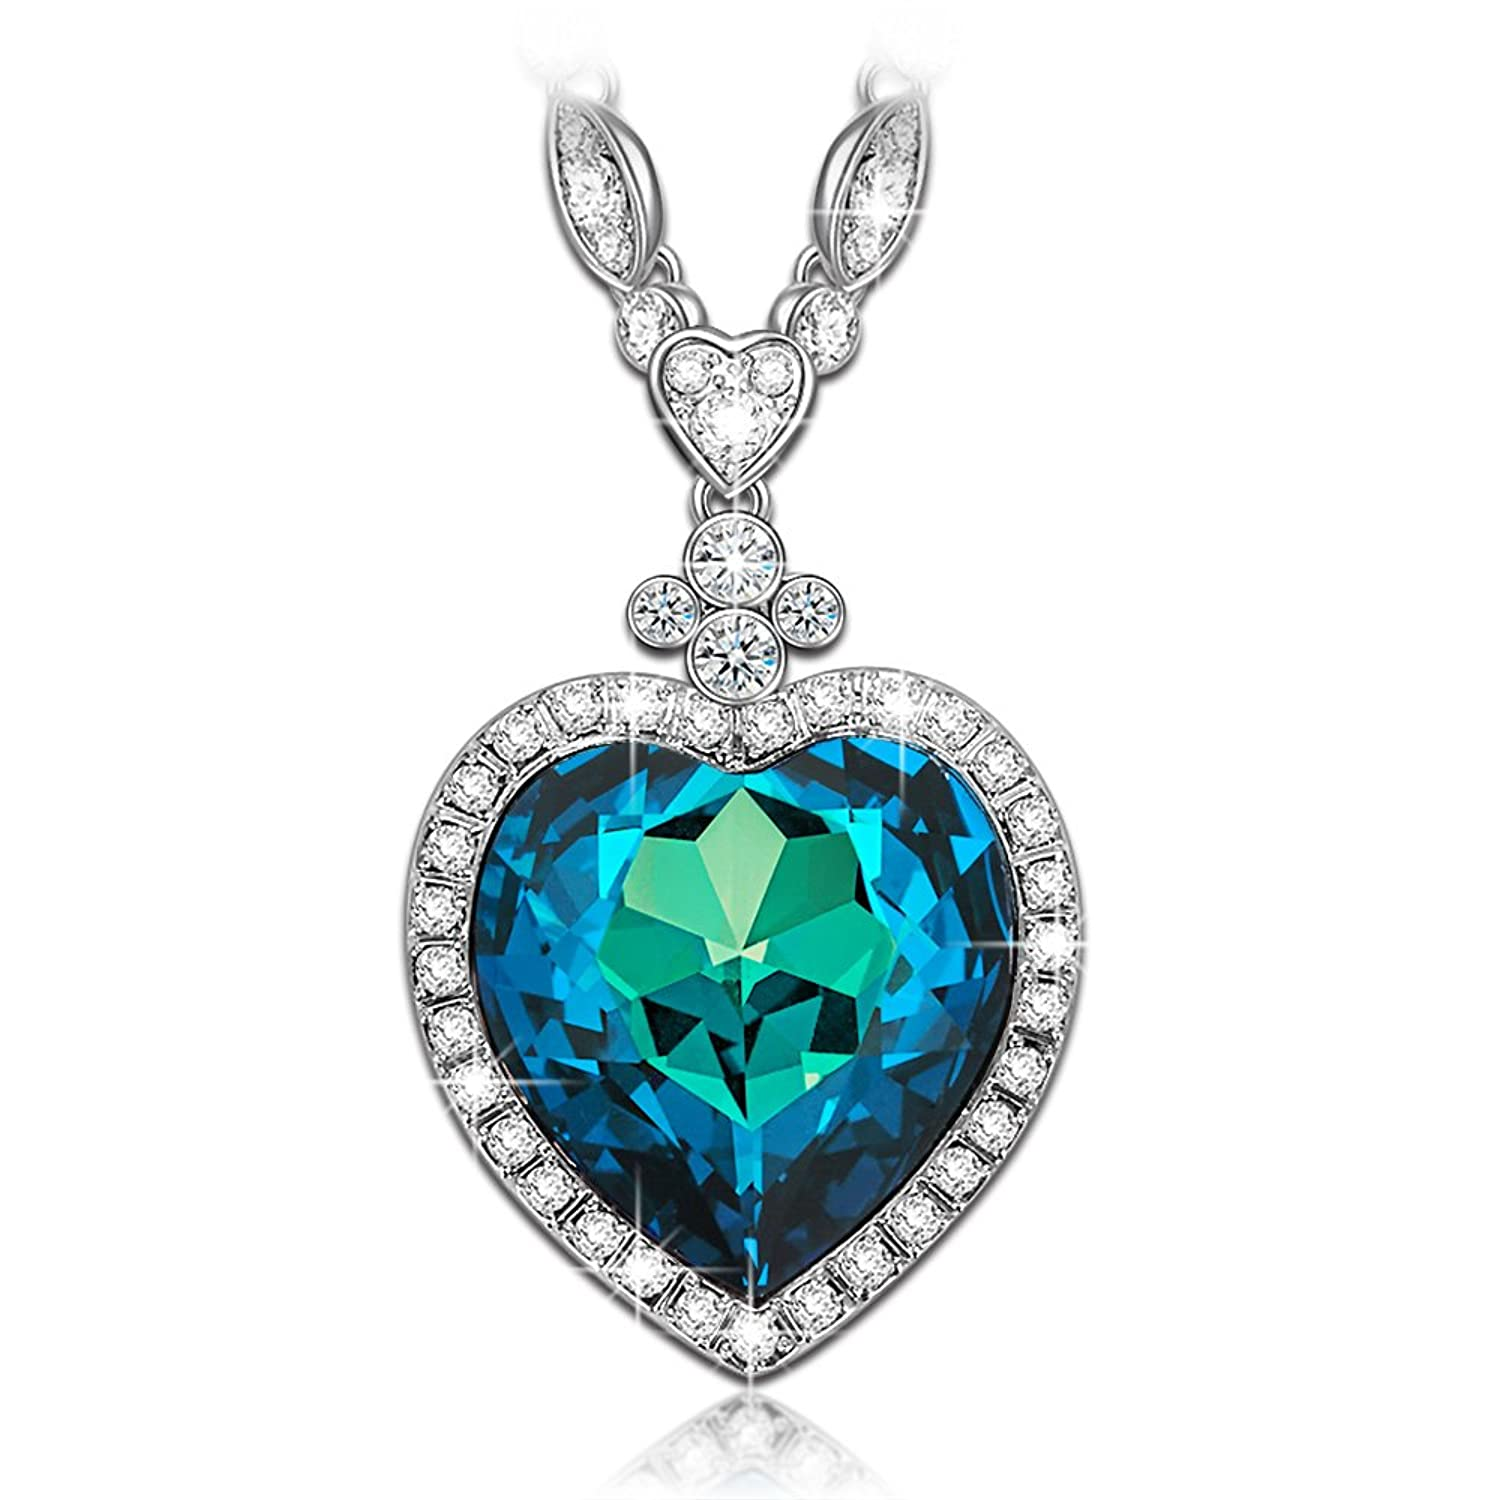 Amazon ladycolour valentines day gifts necklace heart of amazon ladycolour valentines day gifts necklace heart of ocean swarovski crystals necklace sapphire pendant jewelry for women birthday gifts for women aloadofball Image collections